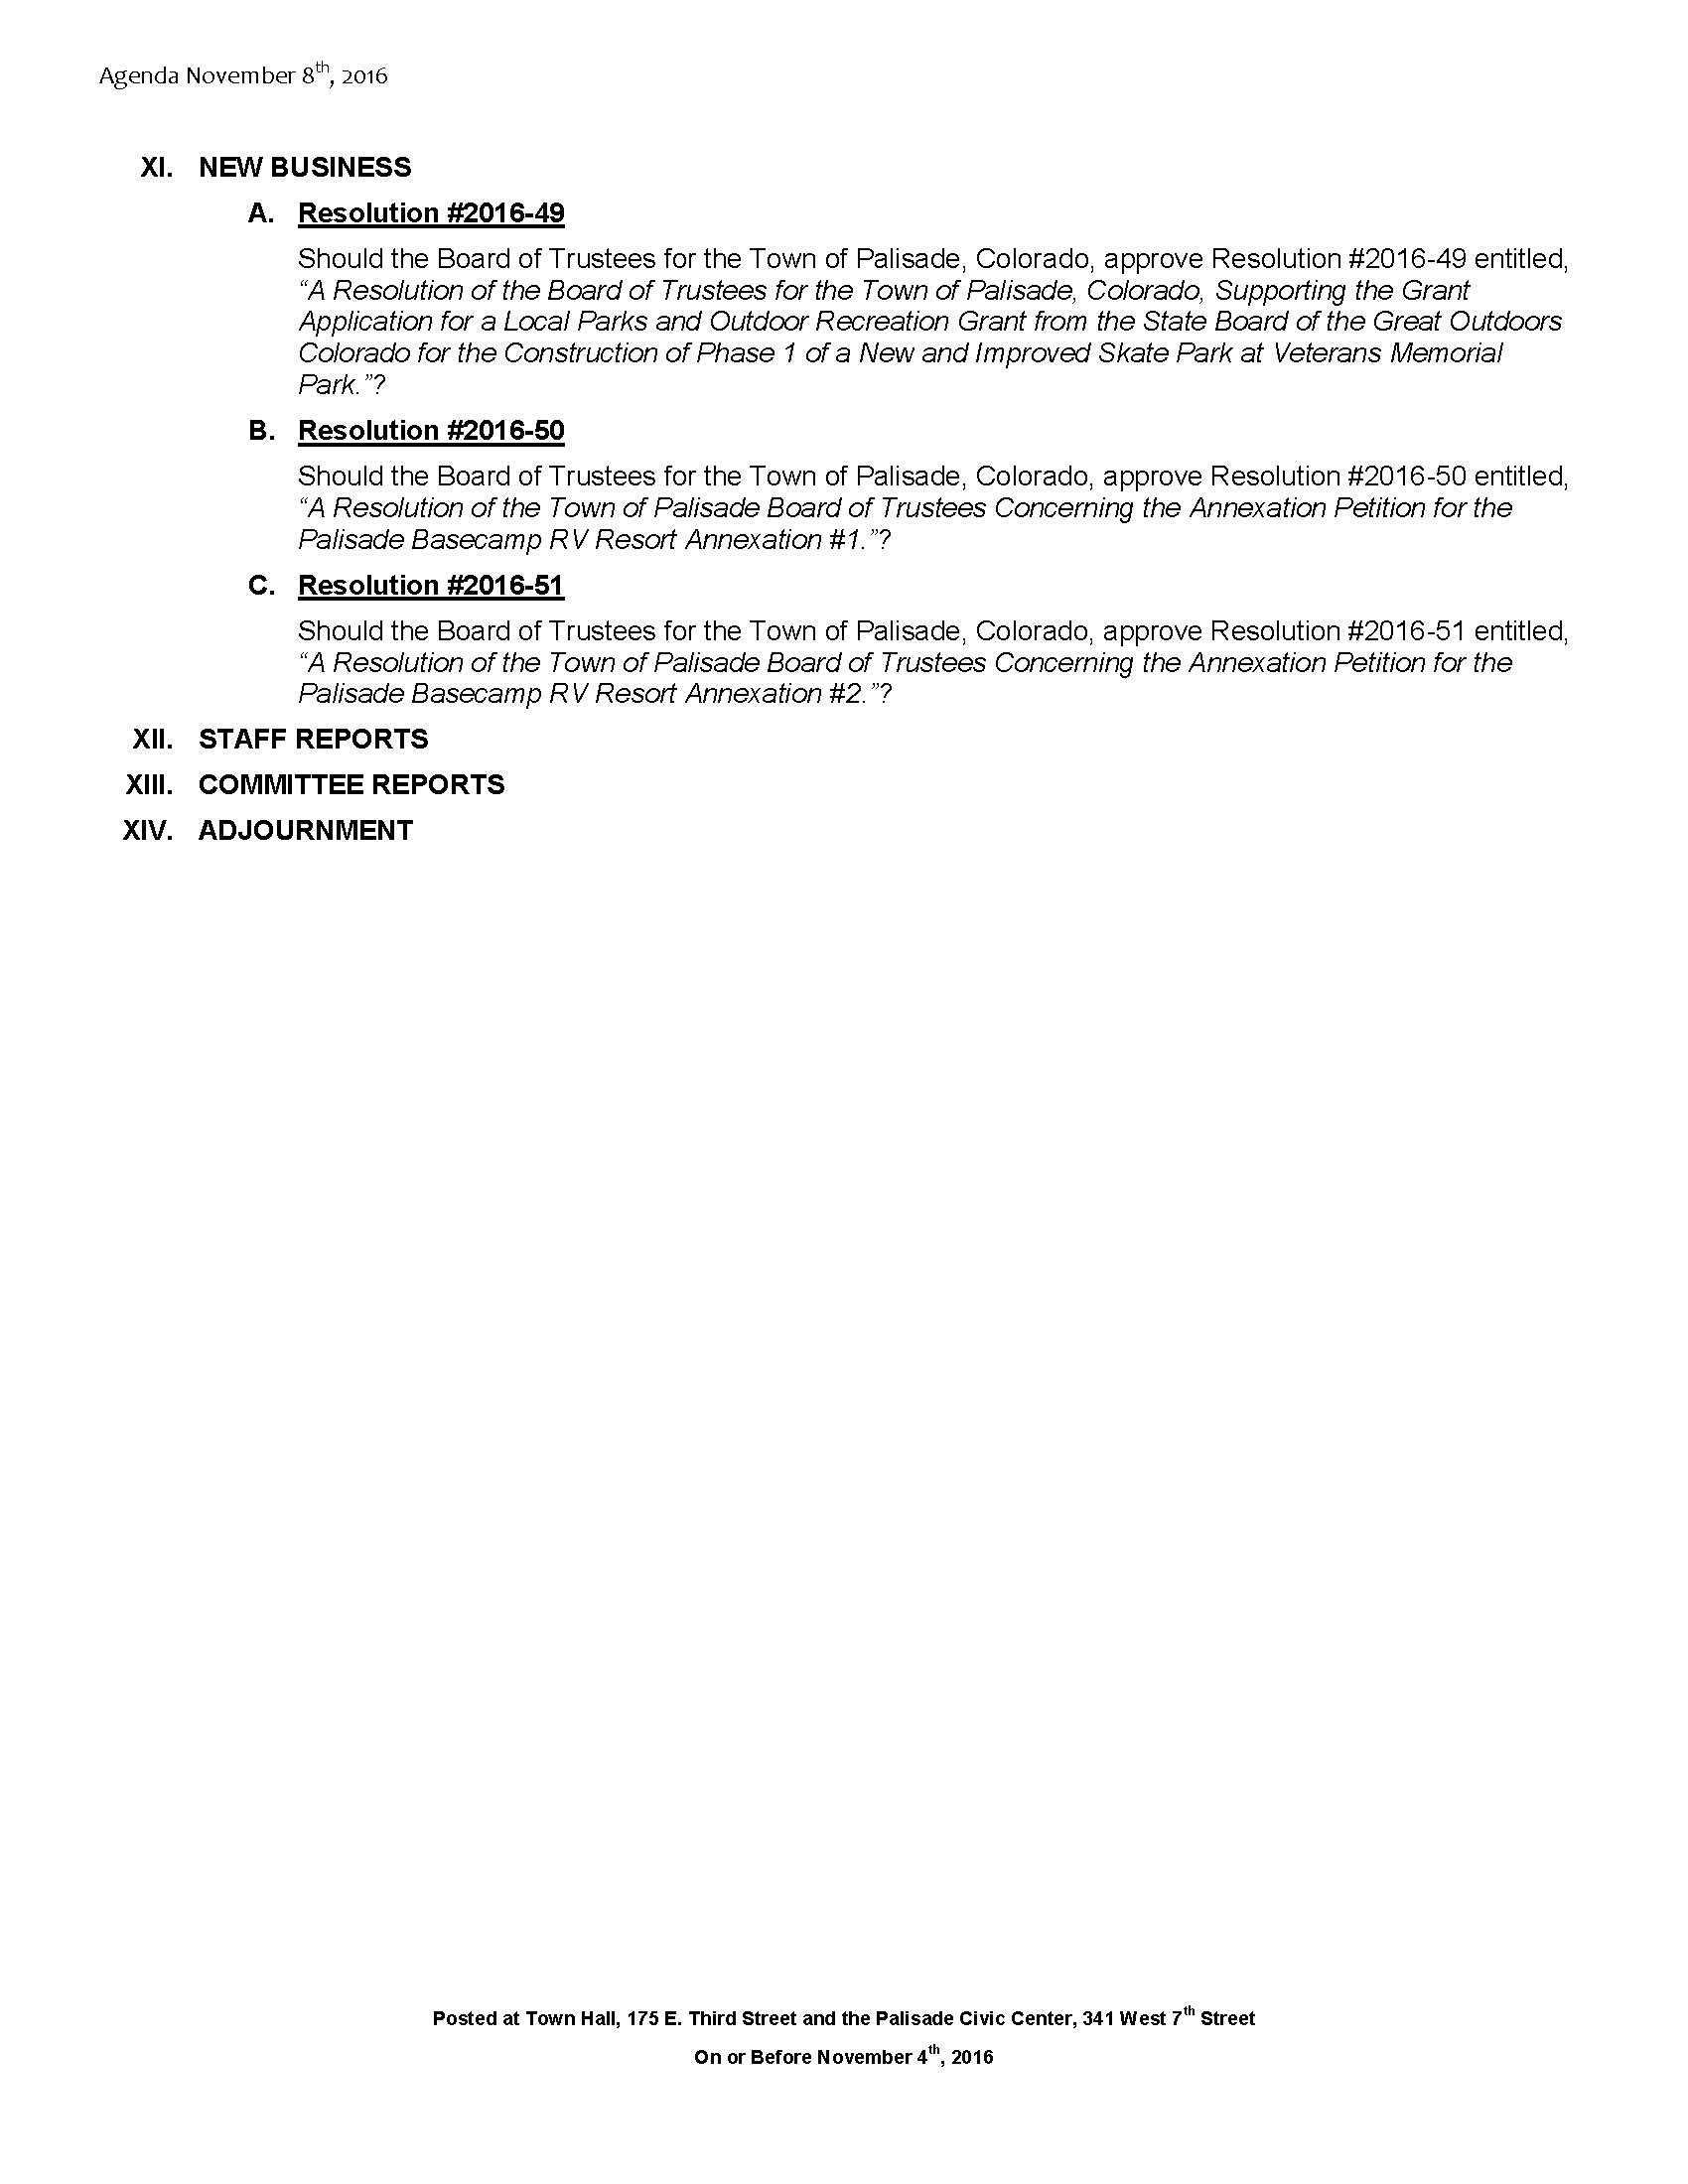 November 8th 2016 Board Meeting Agenda Page 2